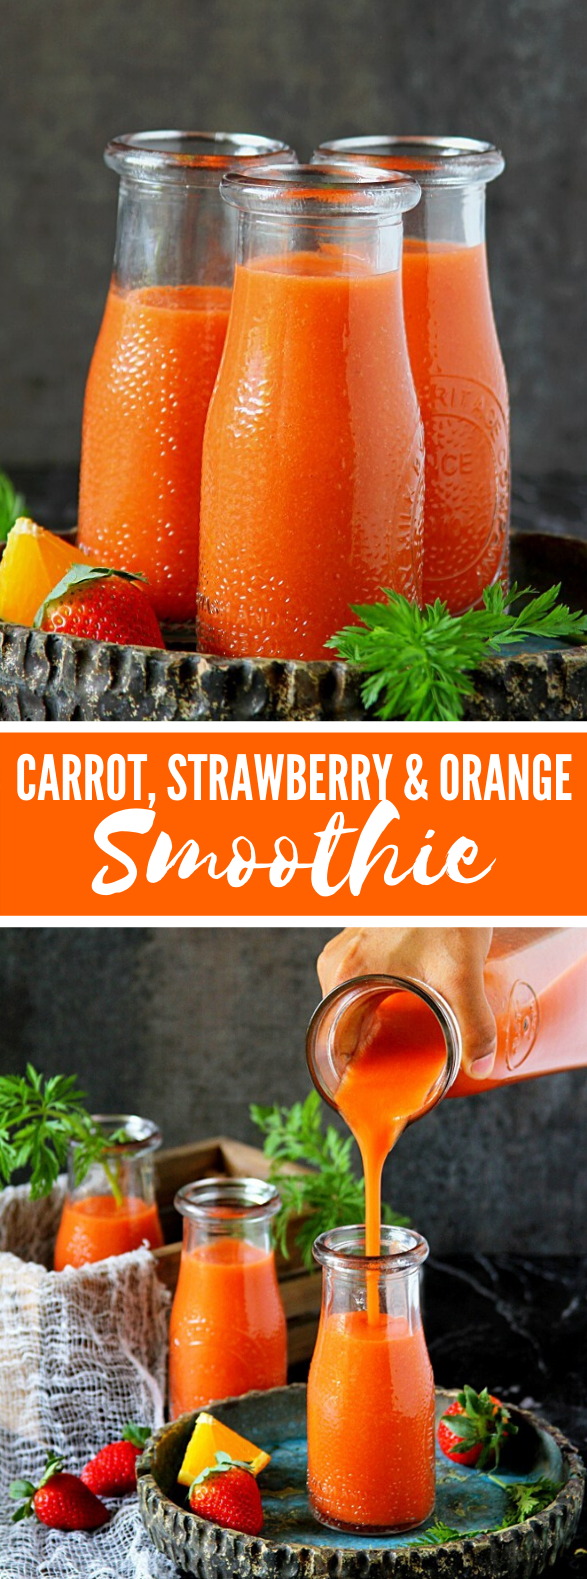 CARROT, STRAWBERRY & ORANGE SMOOTHIE #drinks #healthy